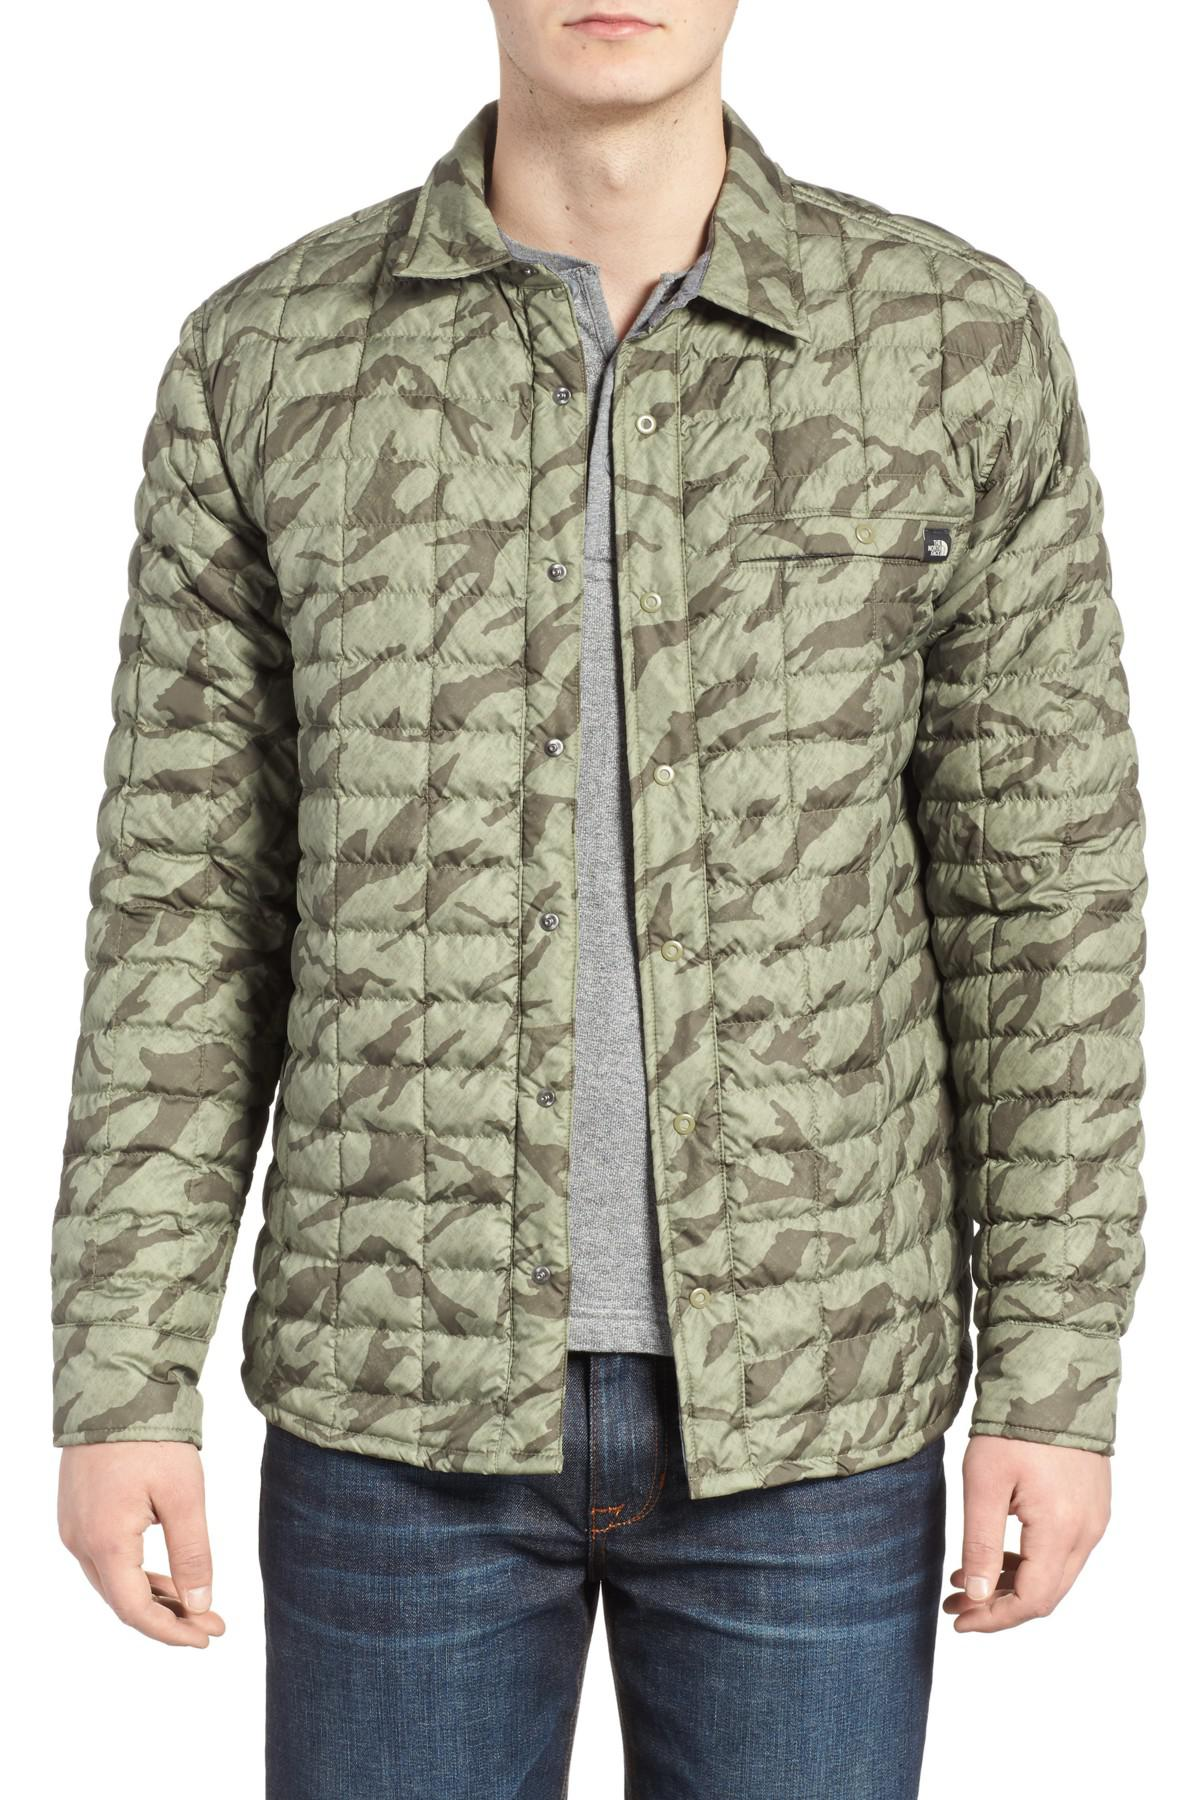 024d443d7 The North Face Reyes Thermoball Shirt Jacket in Green for Men - Lyst